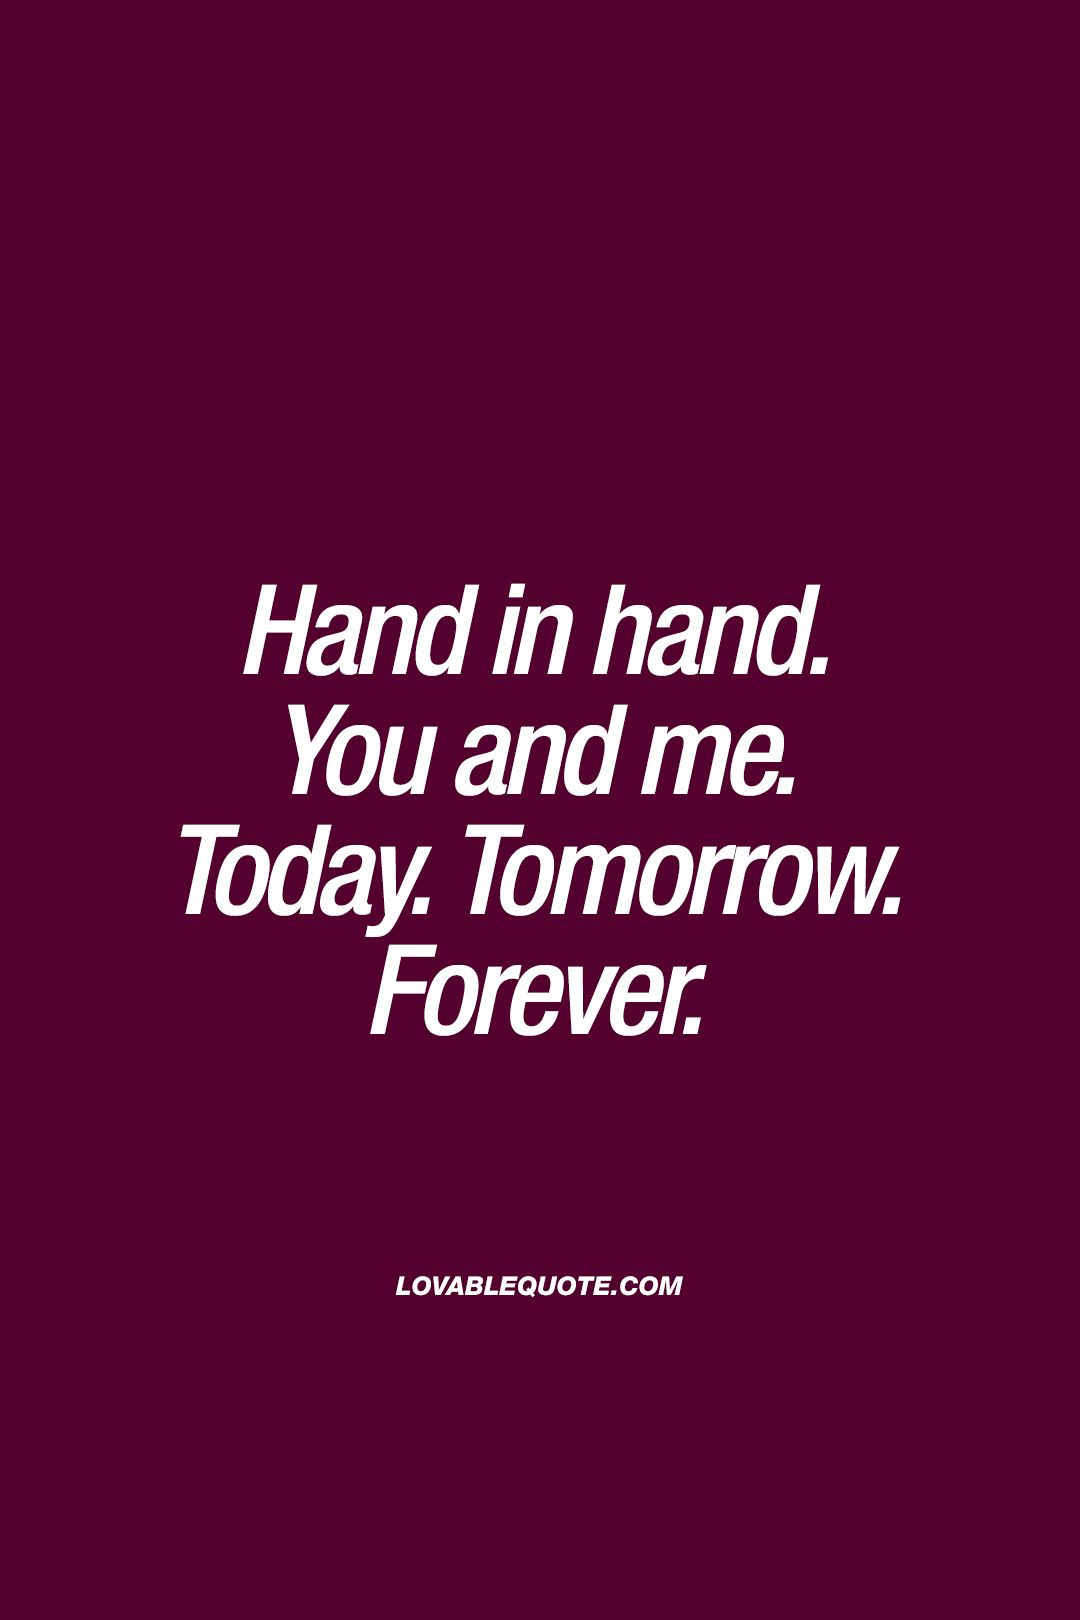 I Love You Quotes 43 Quotes About Love And Relationships Forever Quotes Love Yourself Quotes